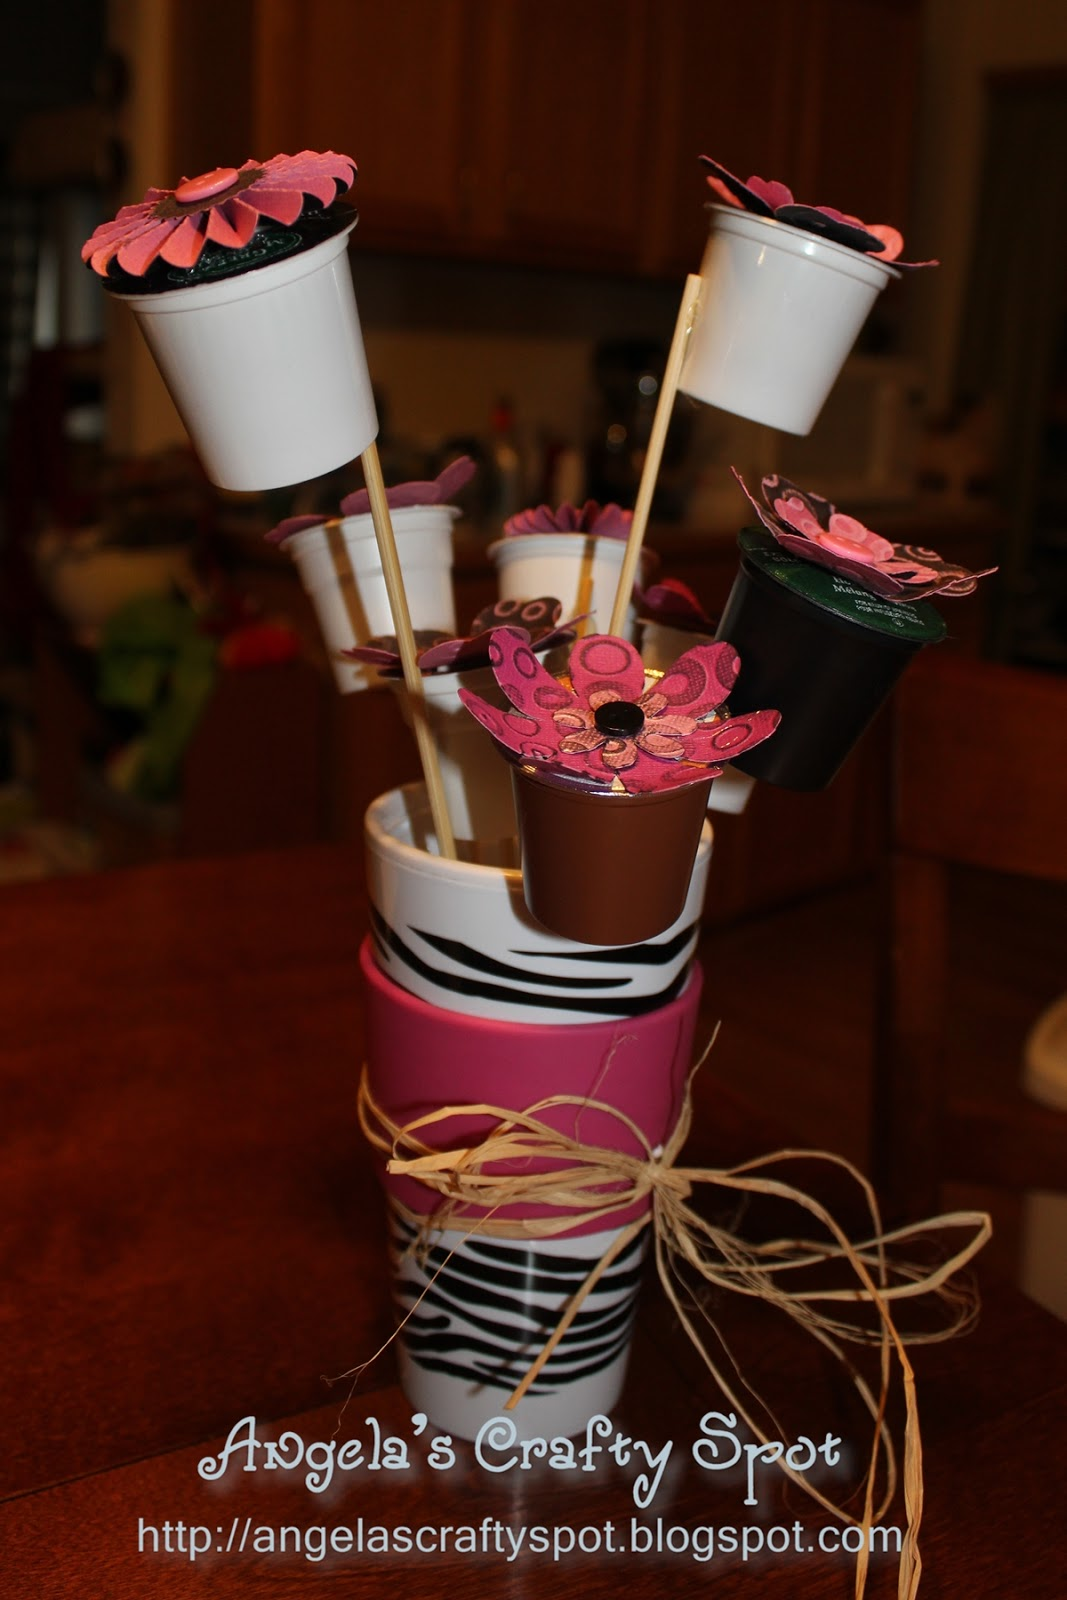 Angela's Crafty Spot: Flowers made from K cups